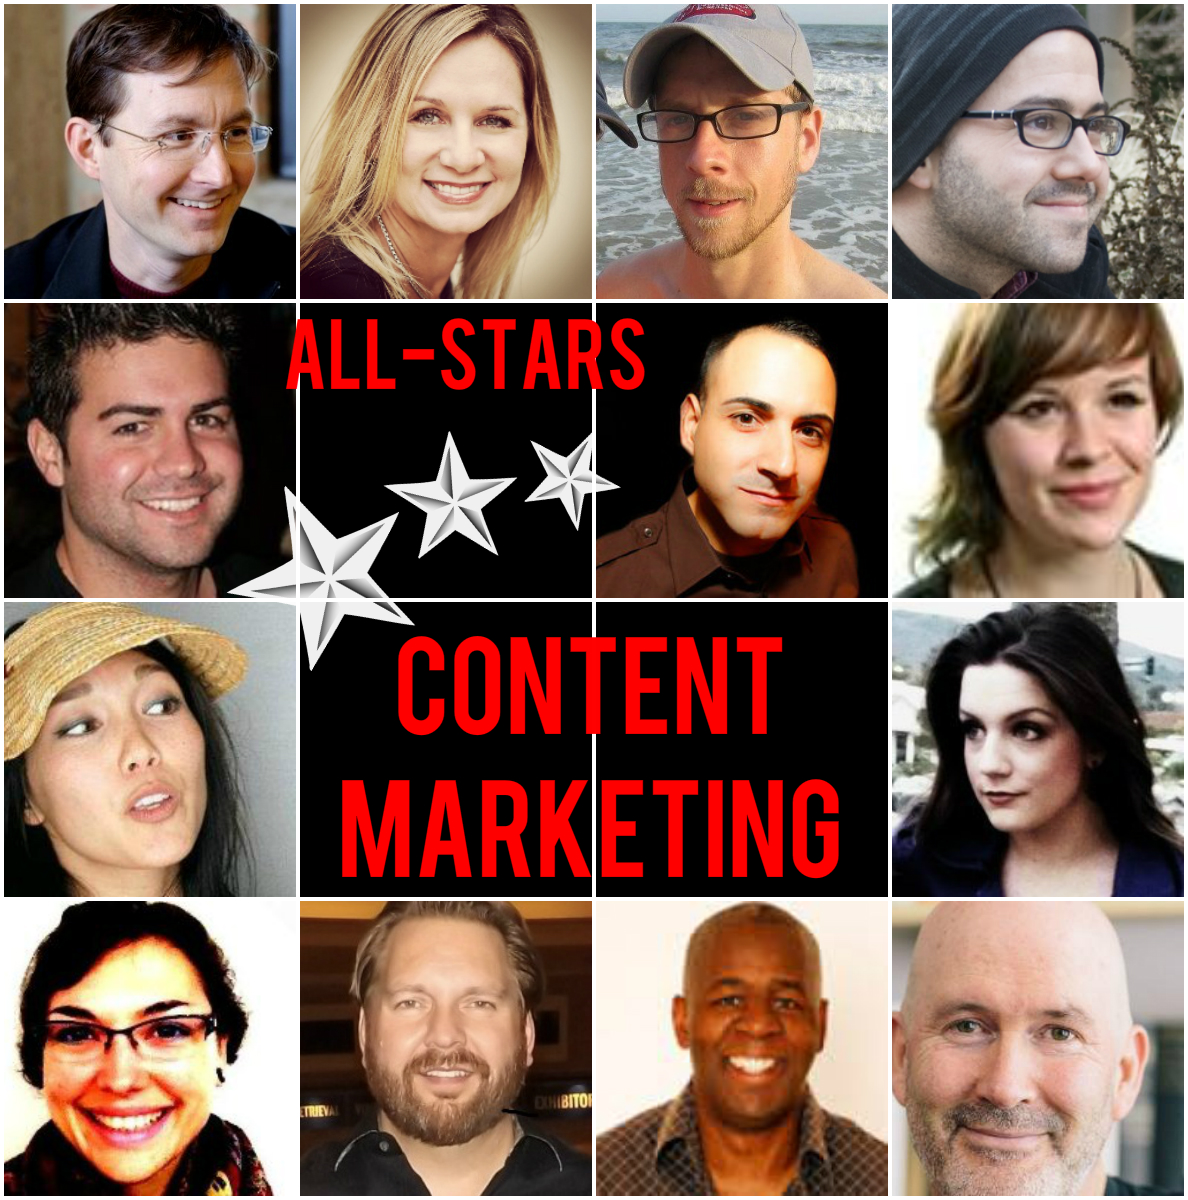 content marketing all stars